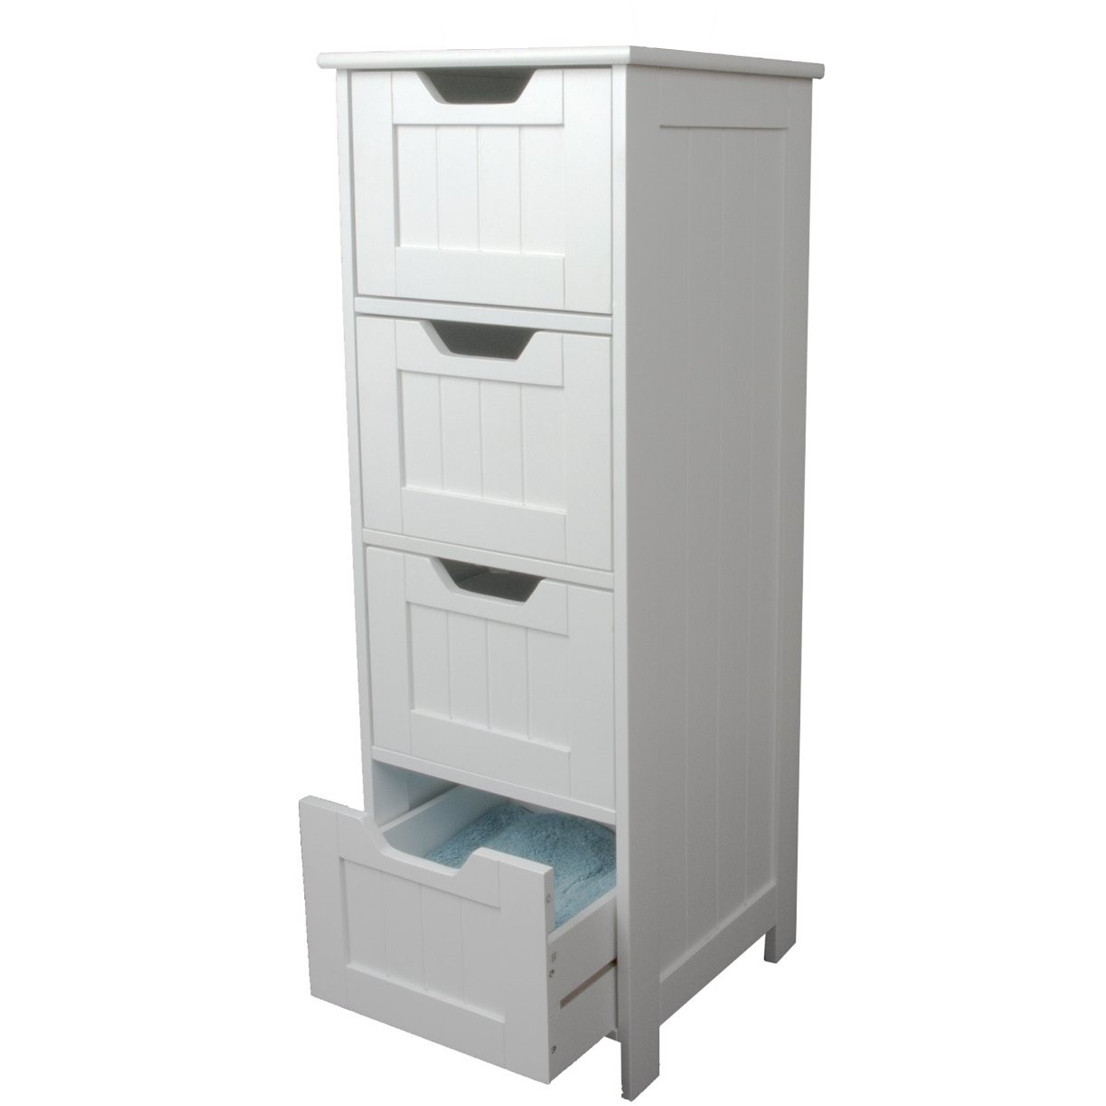 Bathroom Drawers White Storage Cabinet 4 Large Drawers Home Treats Uk